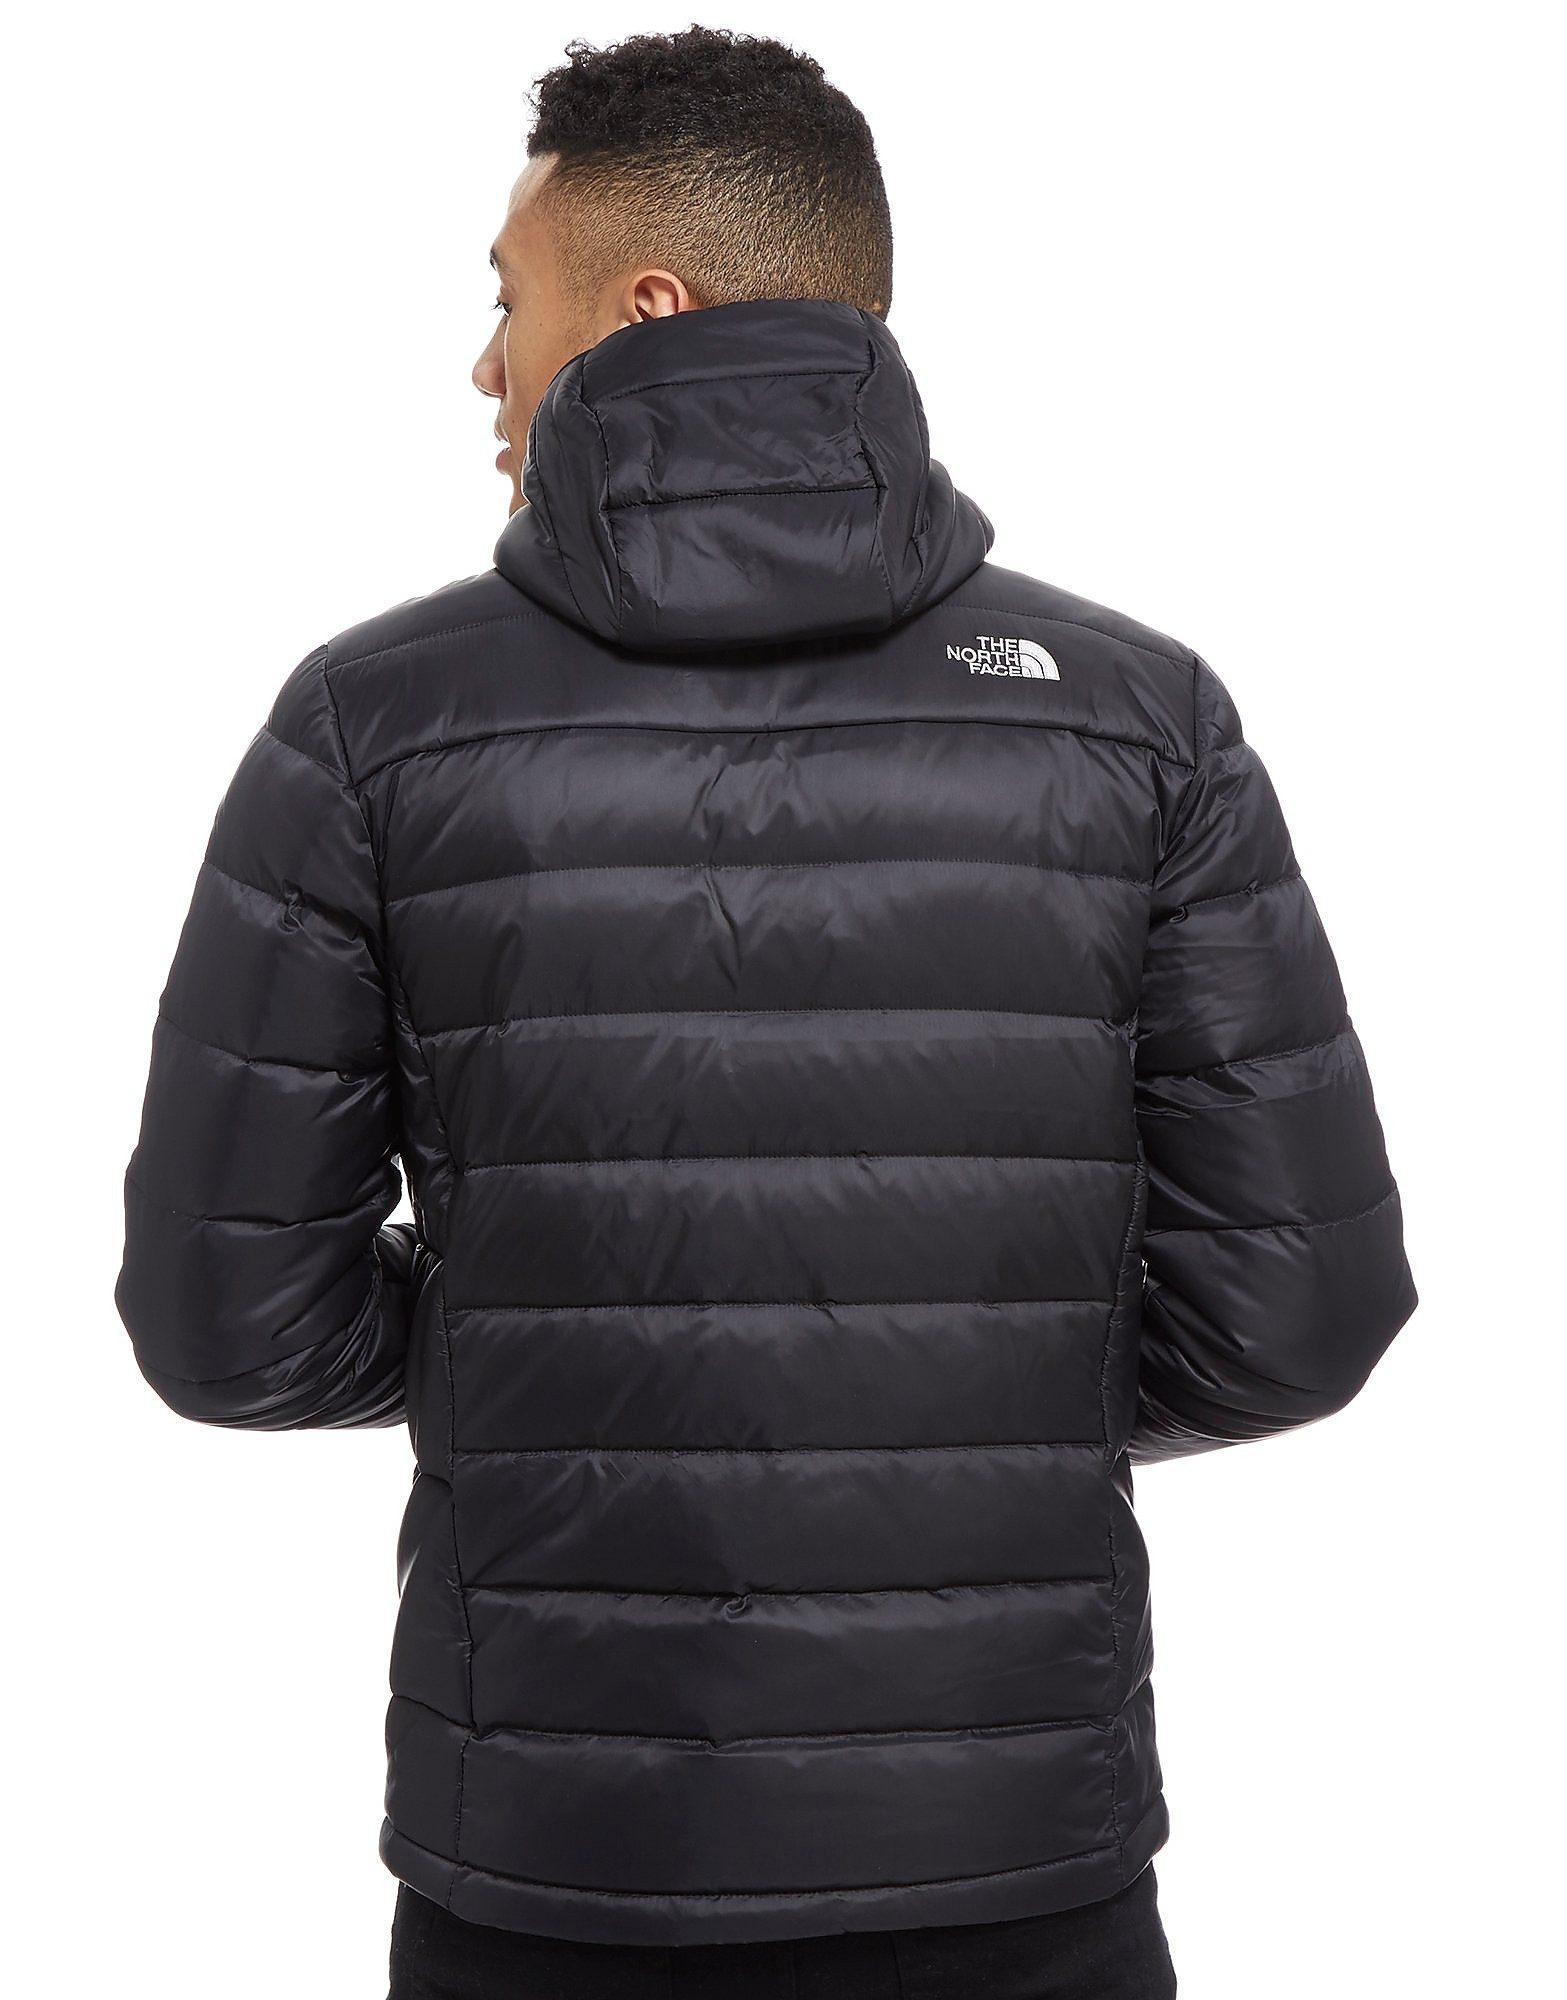 The North Face Parka Aconcagua Down Puffa